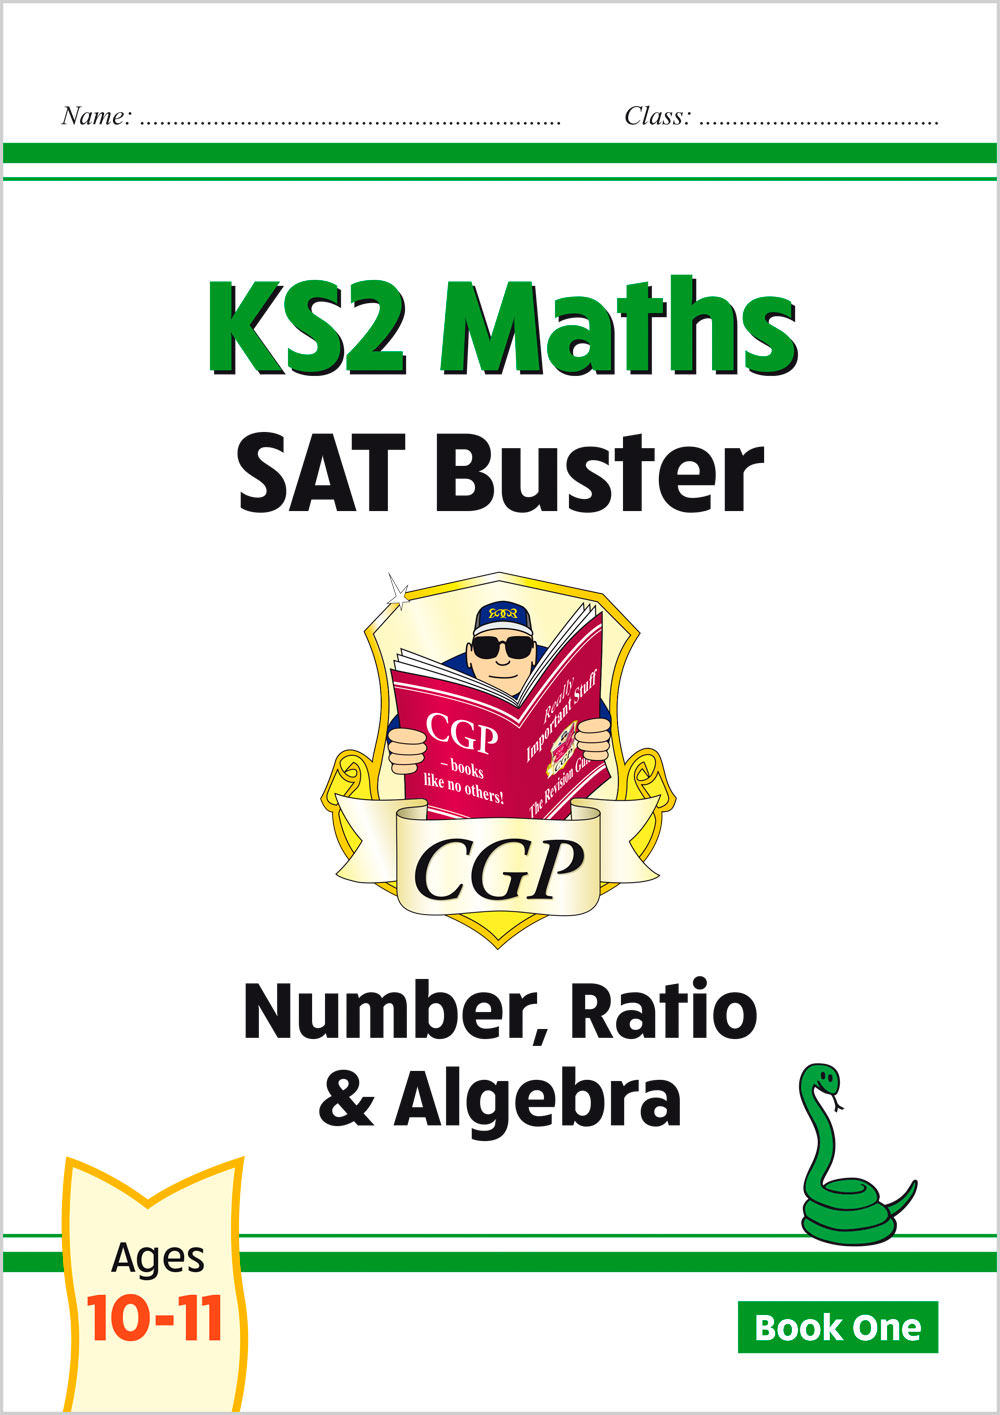 M6N24 - New KS2 Maths SAT Buster: Number, Ratio & Algebra - Book 1 (for the 2021 tests)